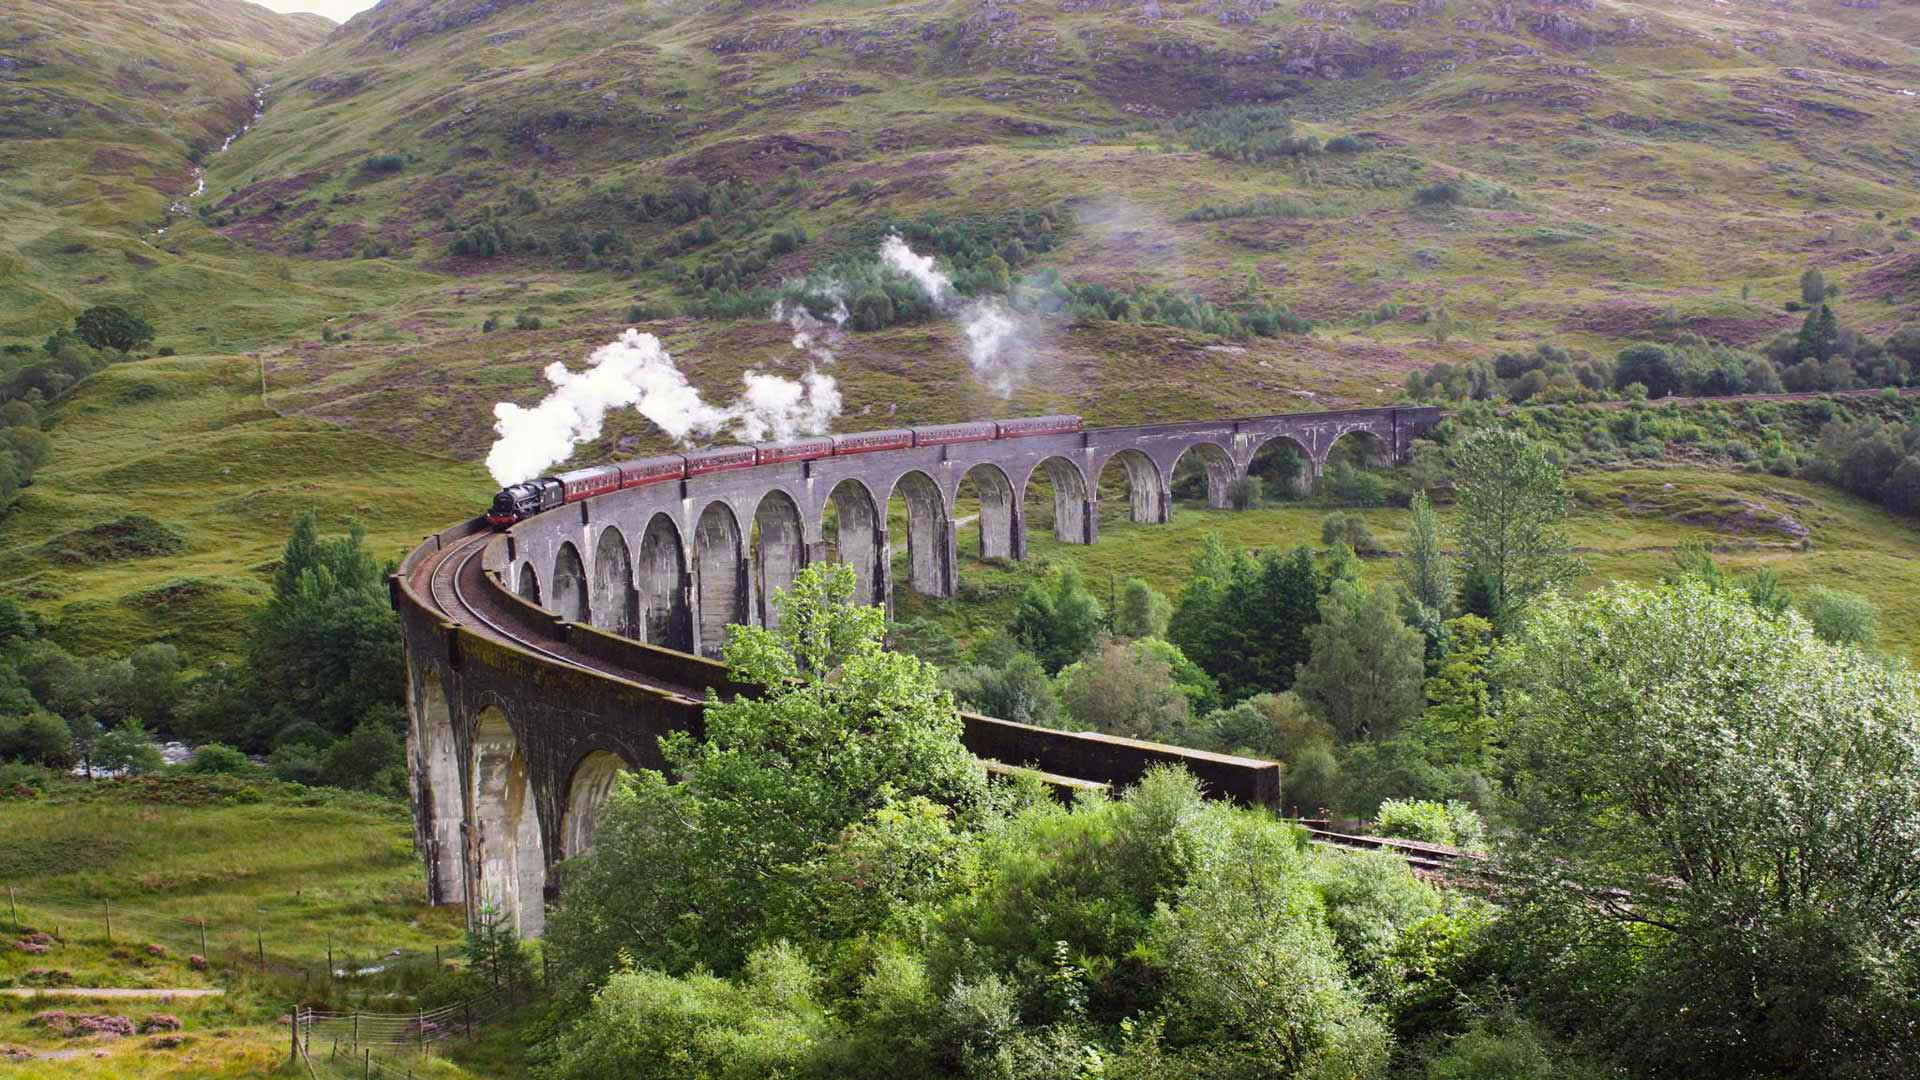 Glenfinnan Viaduct of Harry Potter fame